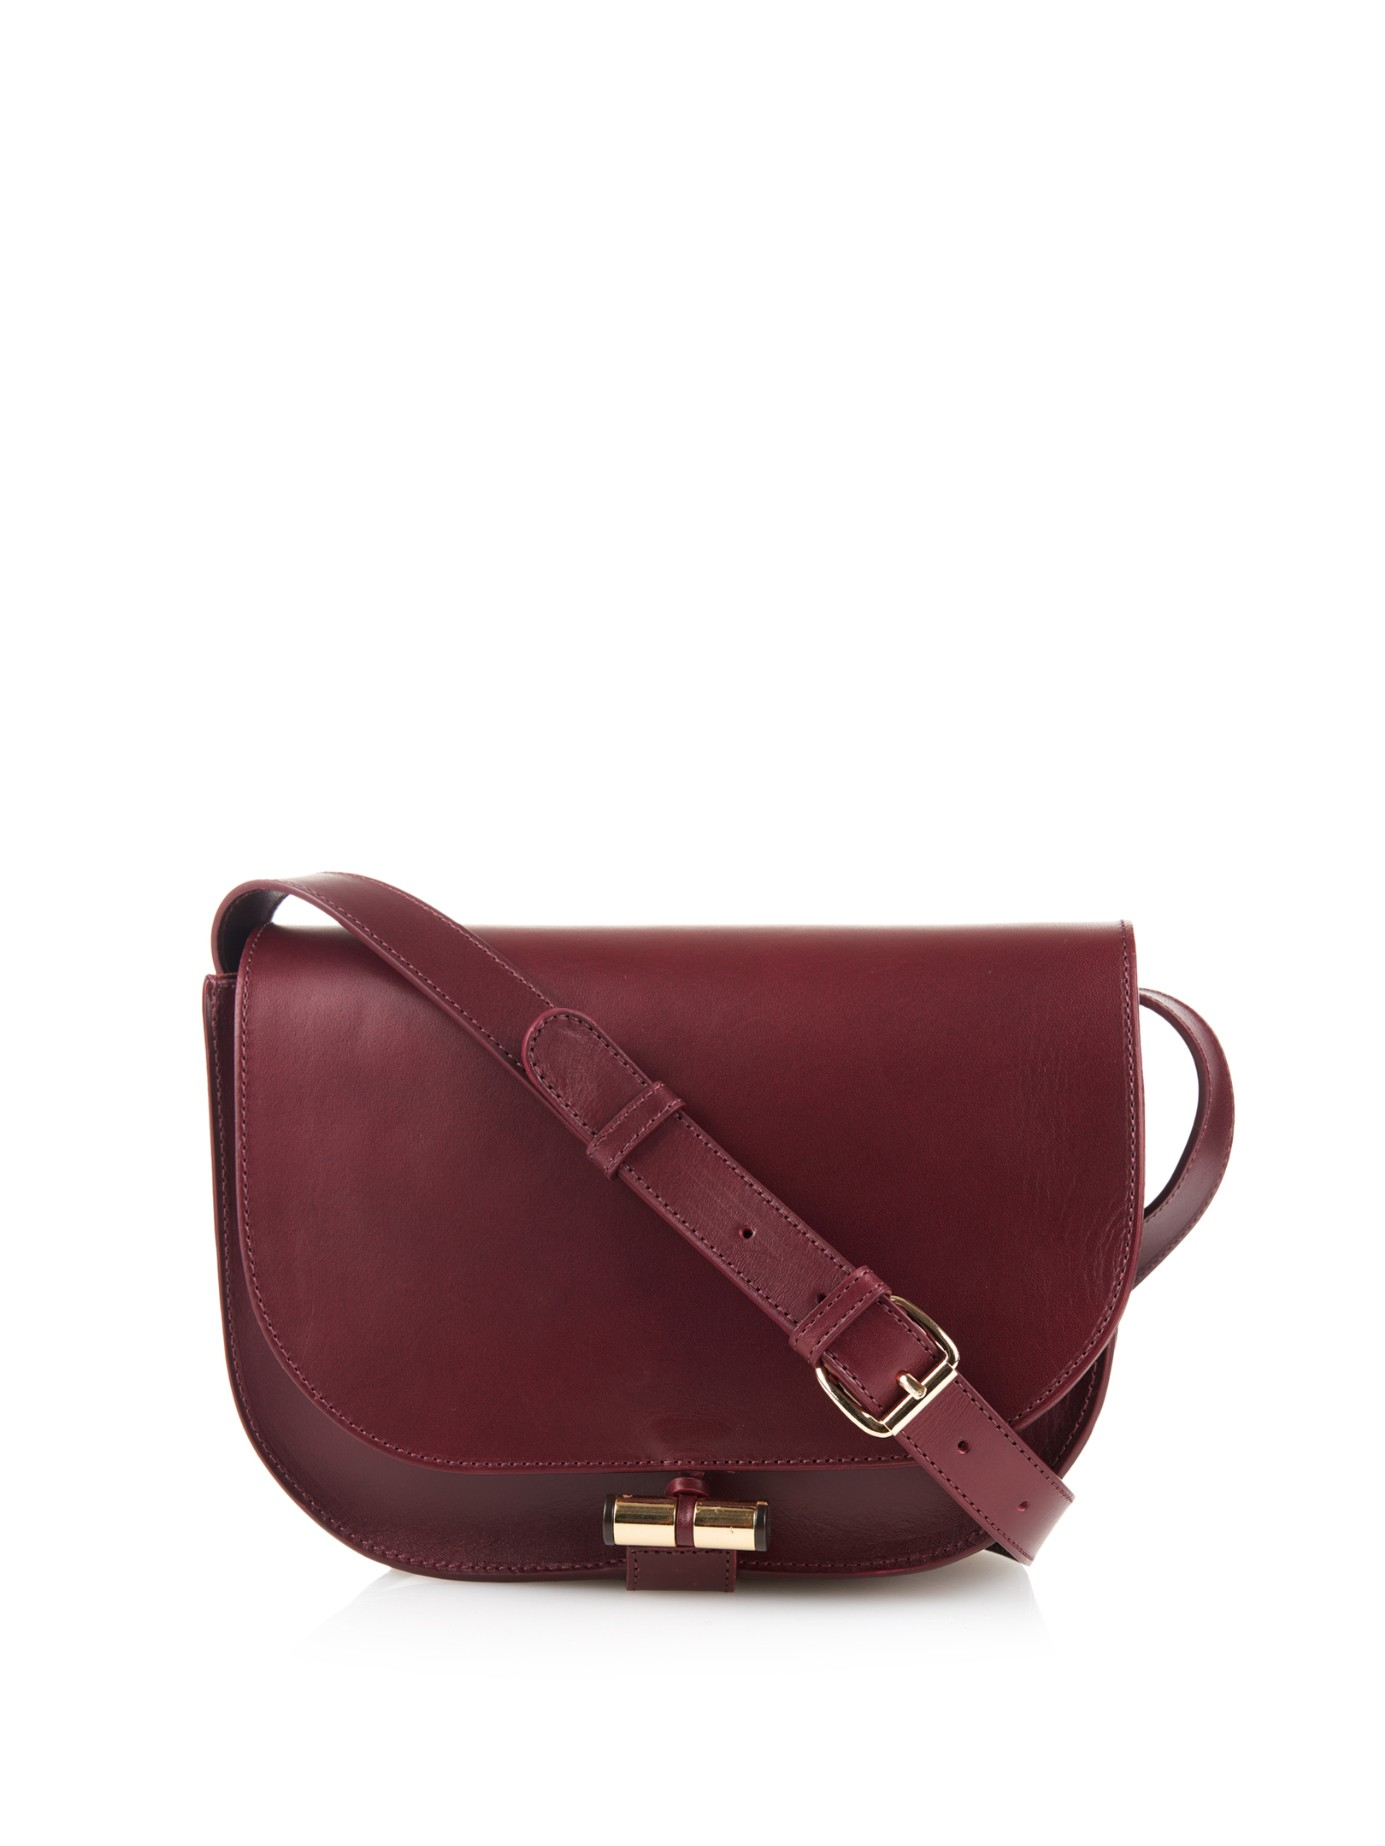 1af050f8f2 Lyst - A.P.C. June Leather Cross-Body Bag in Purple